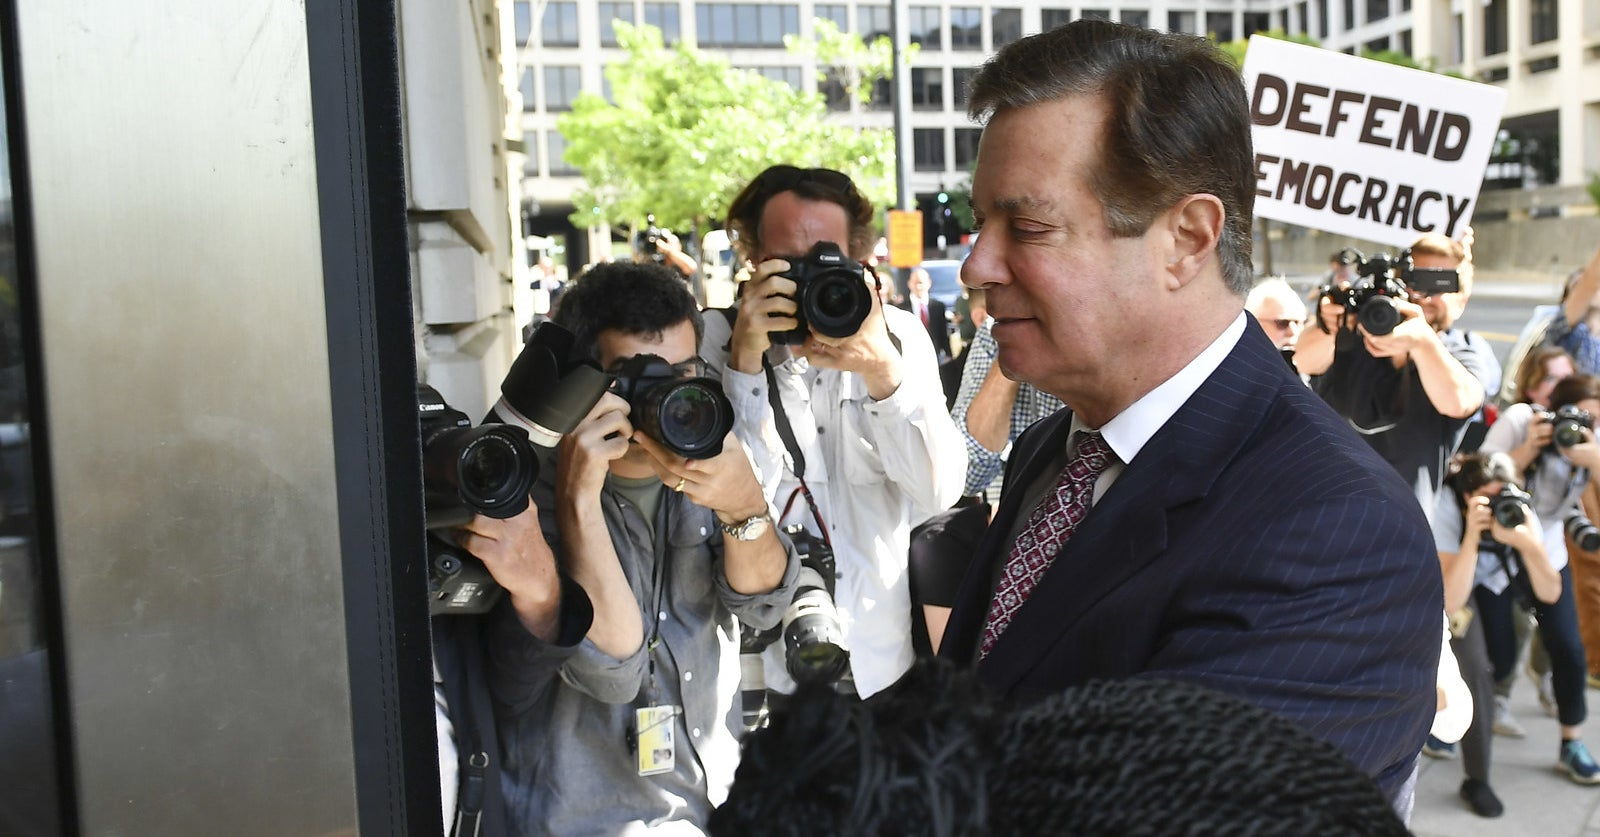 Former Trump Campaign Chair Paul Manafort Is Expected To Plead Guilty And Avoid A Second Trial